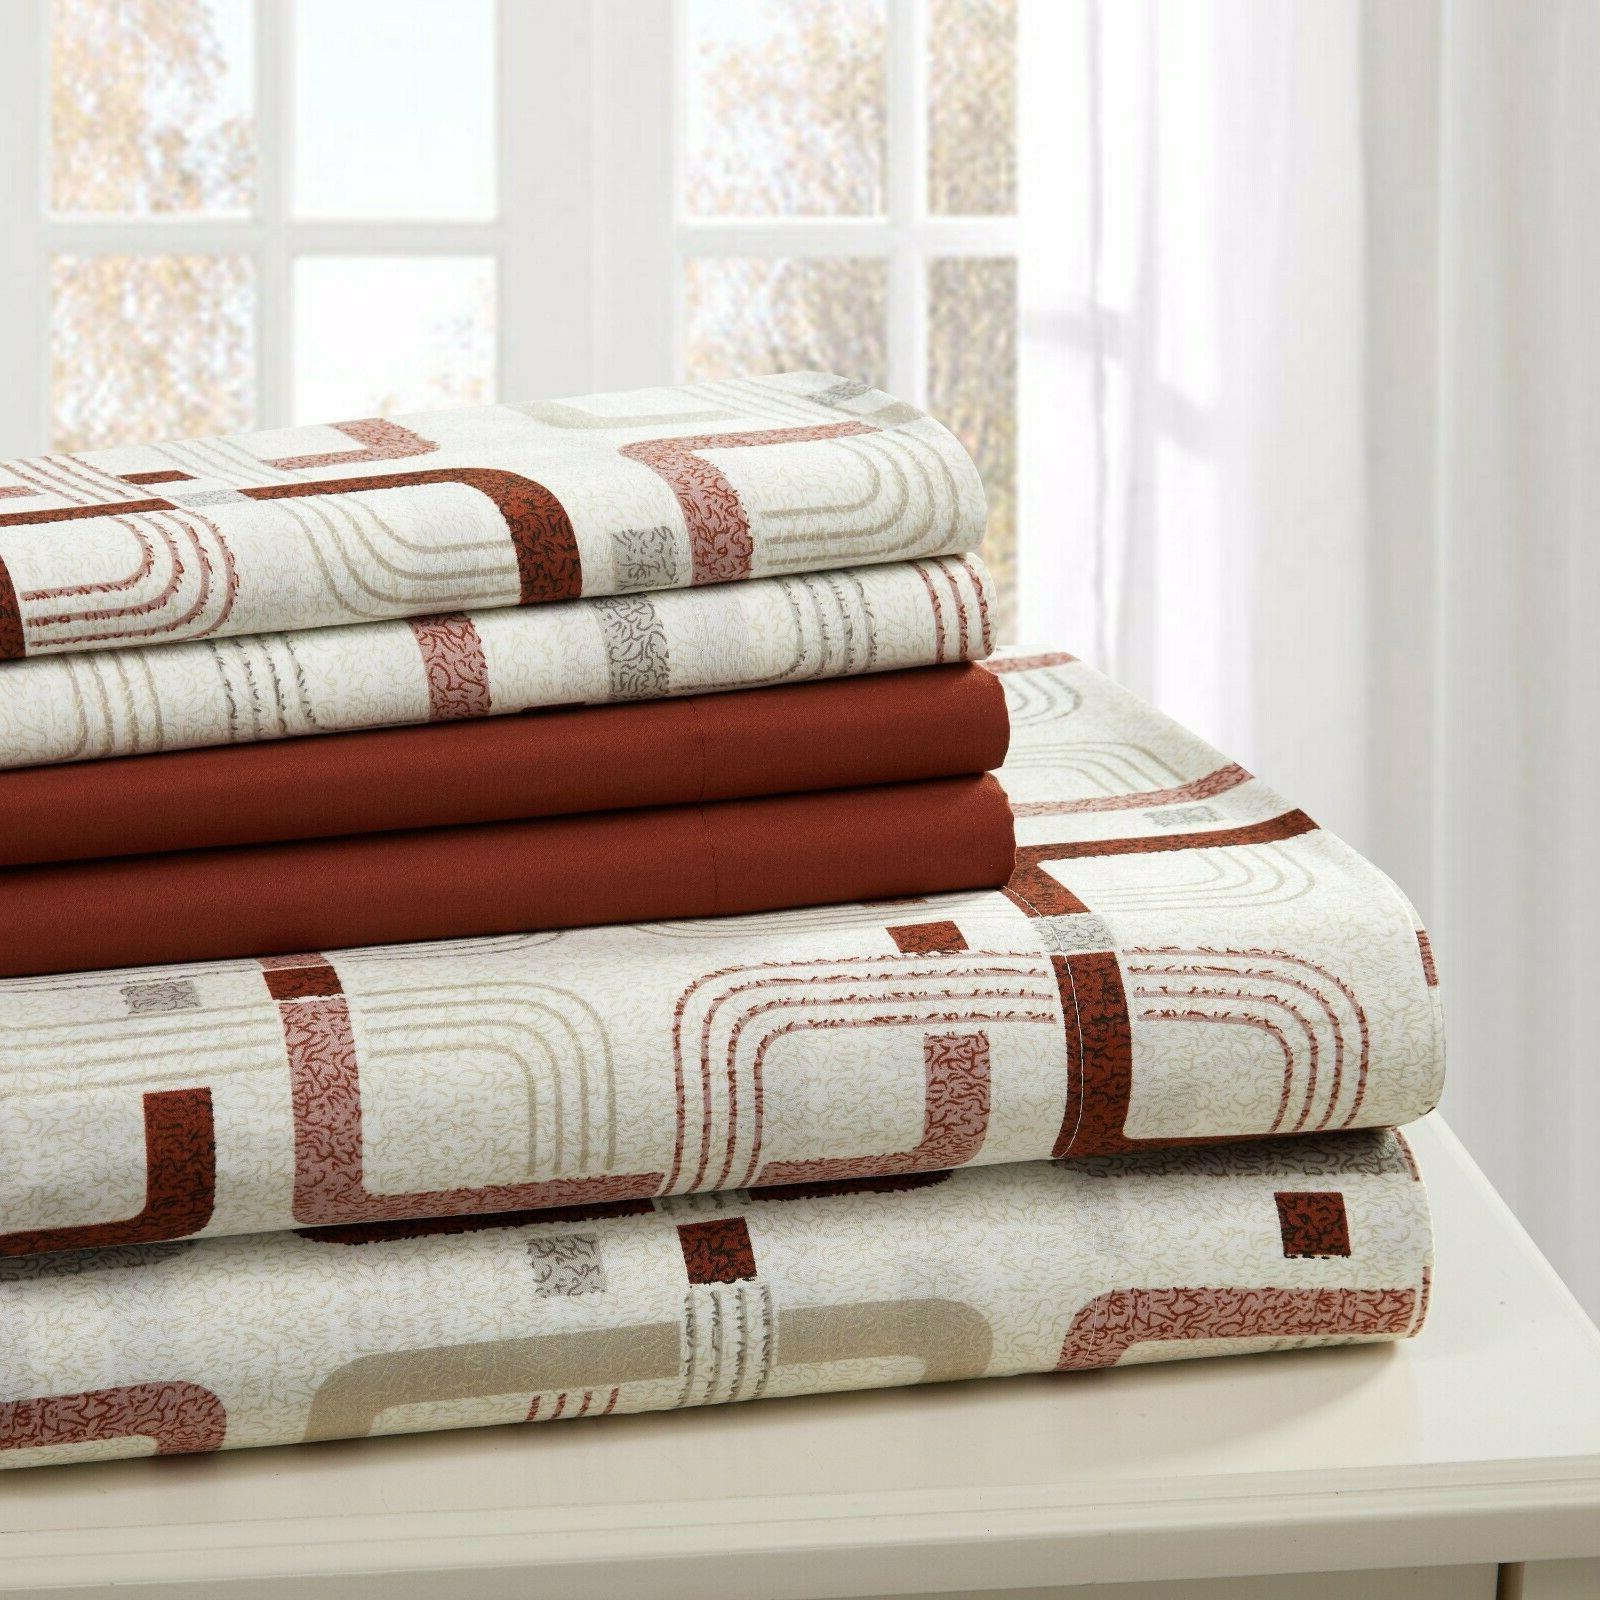 SHEET SET PRINT 6 PIECE COTTON PERCALE SOFT DEEP POCKET  FRE